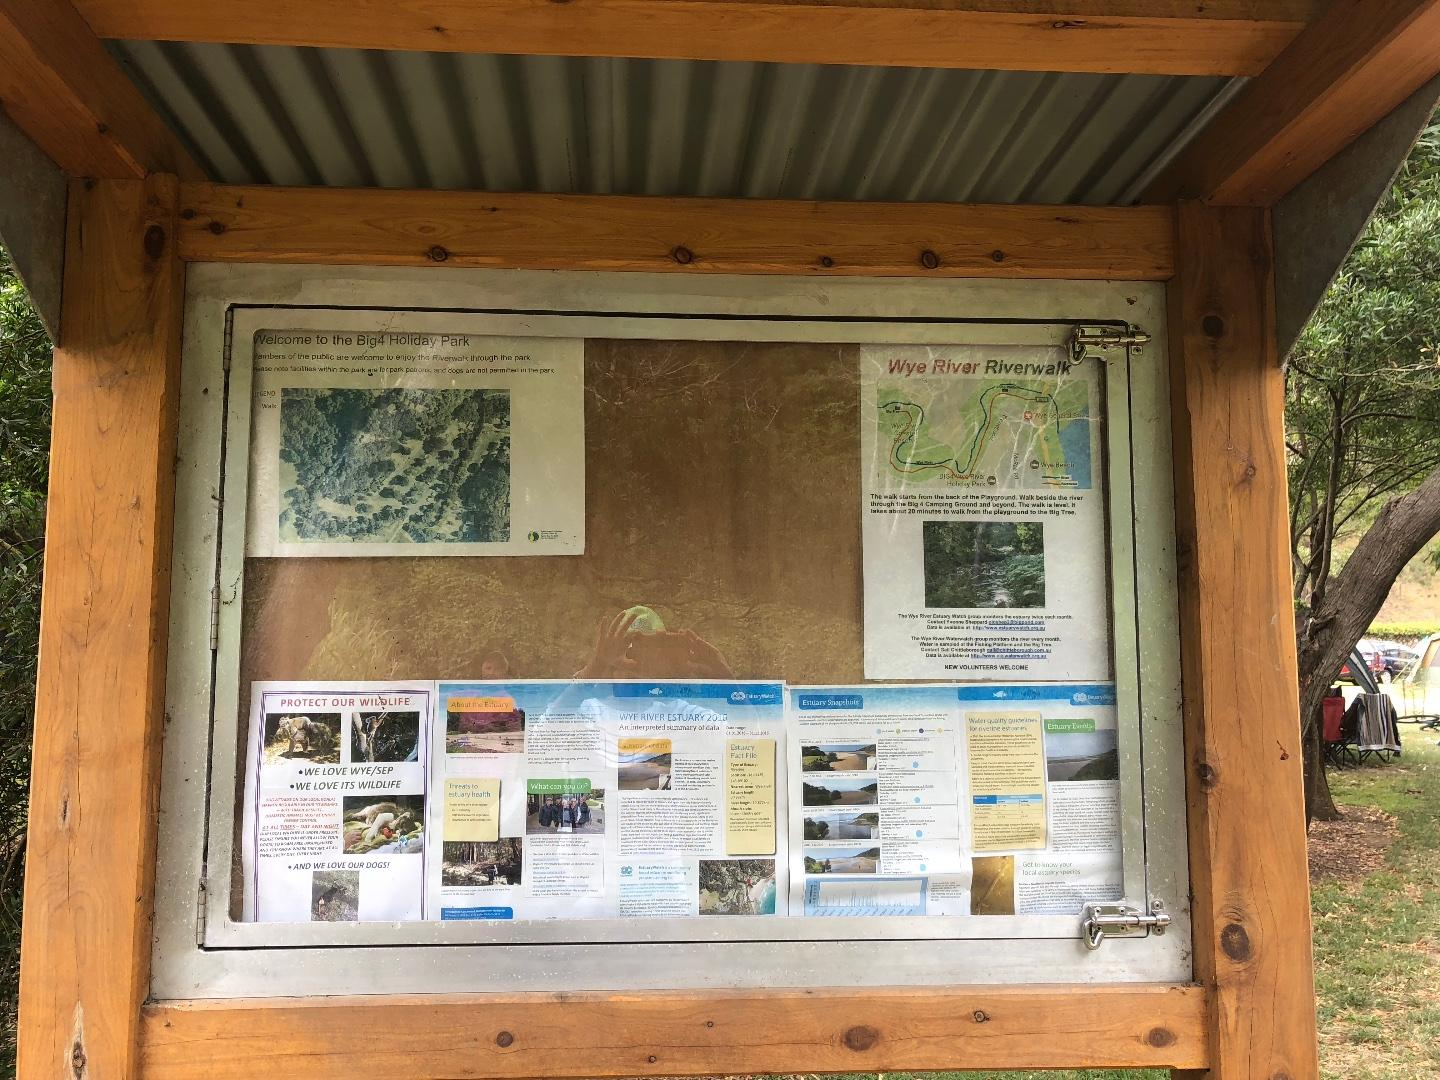 Noticeboard at the entrance to the Big 4 caravan park- with estuary watch  and Wye riverwalk information